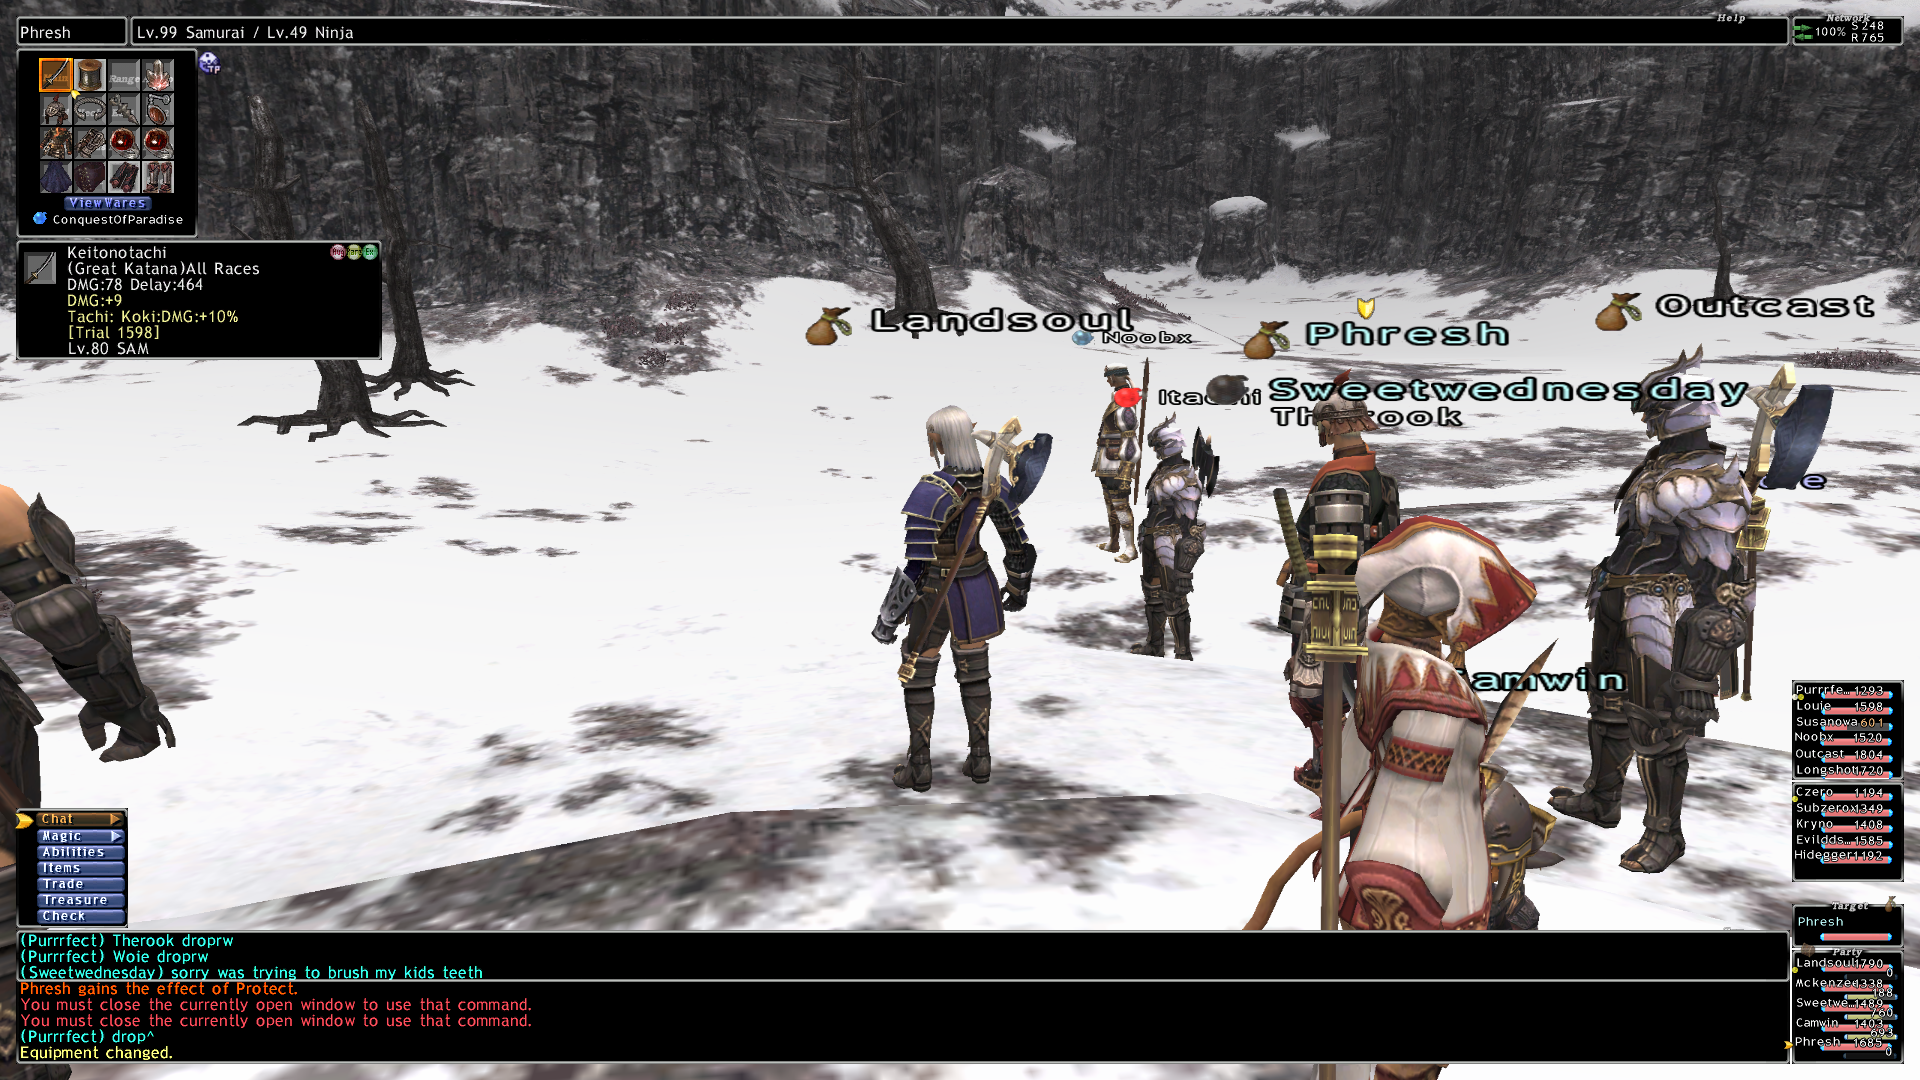 landsoul ffxi your bear also thread time spend fucks unemployed paying this economy taxes rest players sucking would without cock addictions german full about they money their commenting plays into wouldnt were social angry xxiii player guys rude being trying impress decade almost gimpconfusedwtf jobs enough well playing started dont